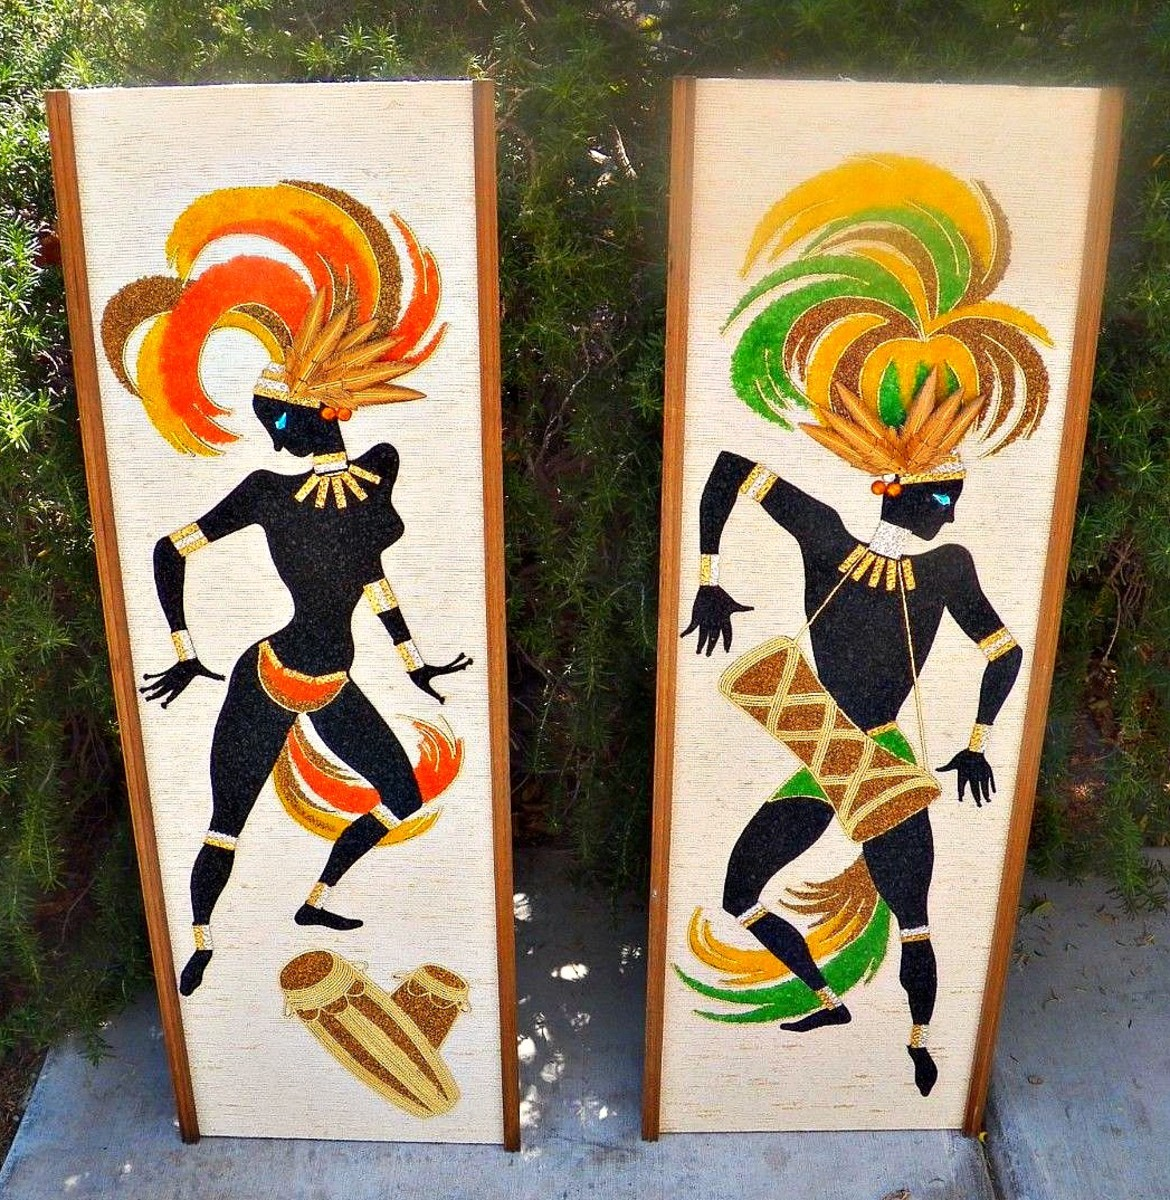 "VINTAGE CRUSHED GRAVEL MOSAIC ART PAIR OF DANCERS MID CENTURY MODERN 13""X36""."